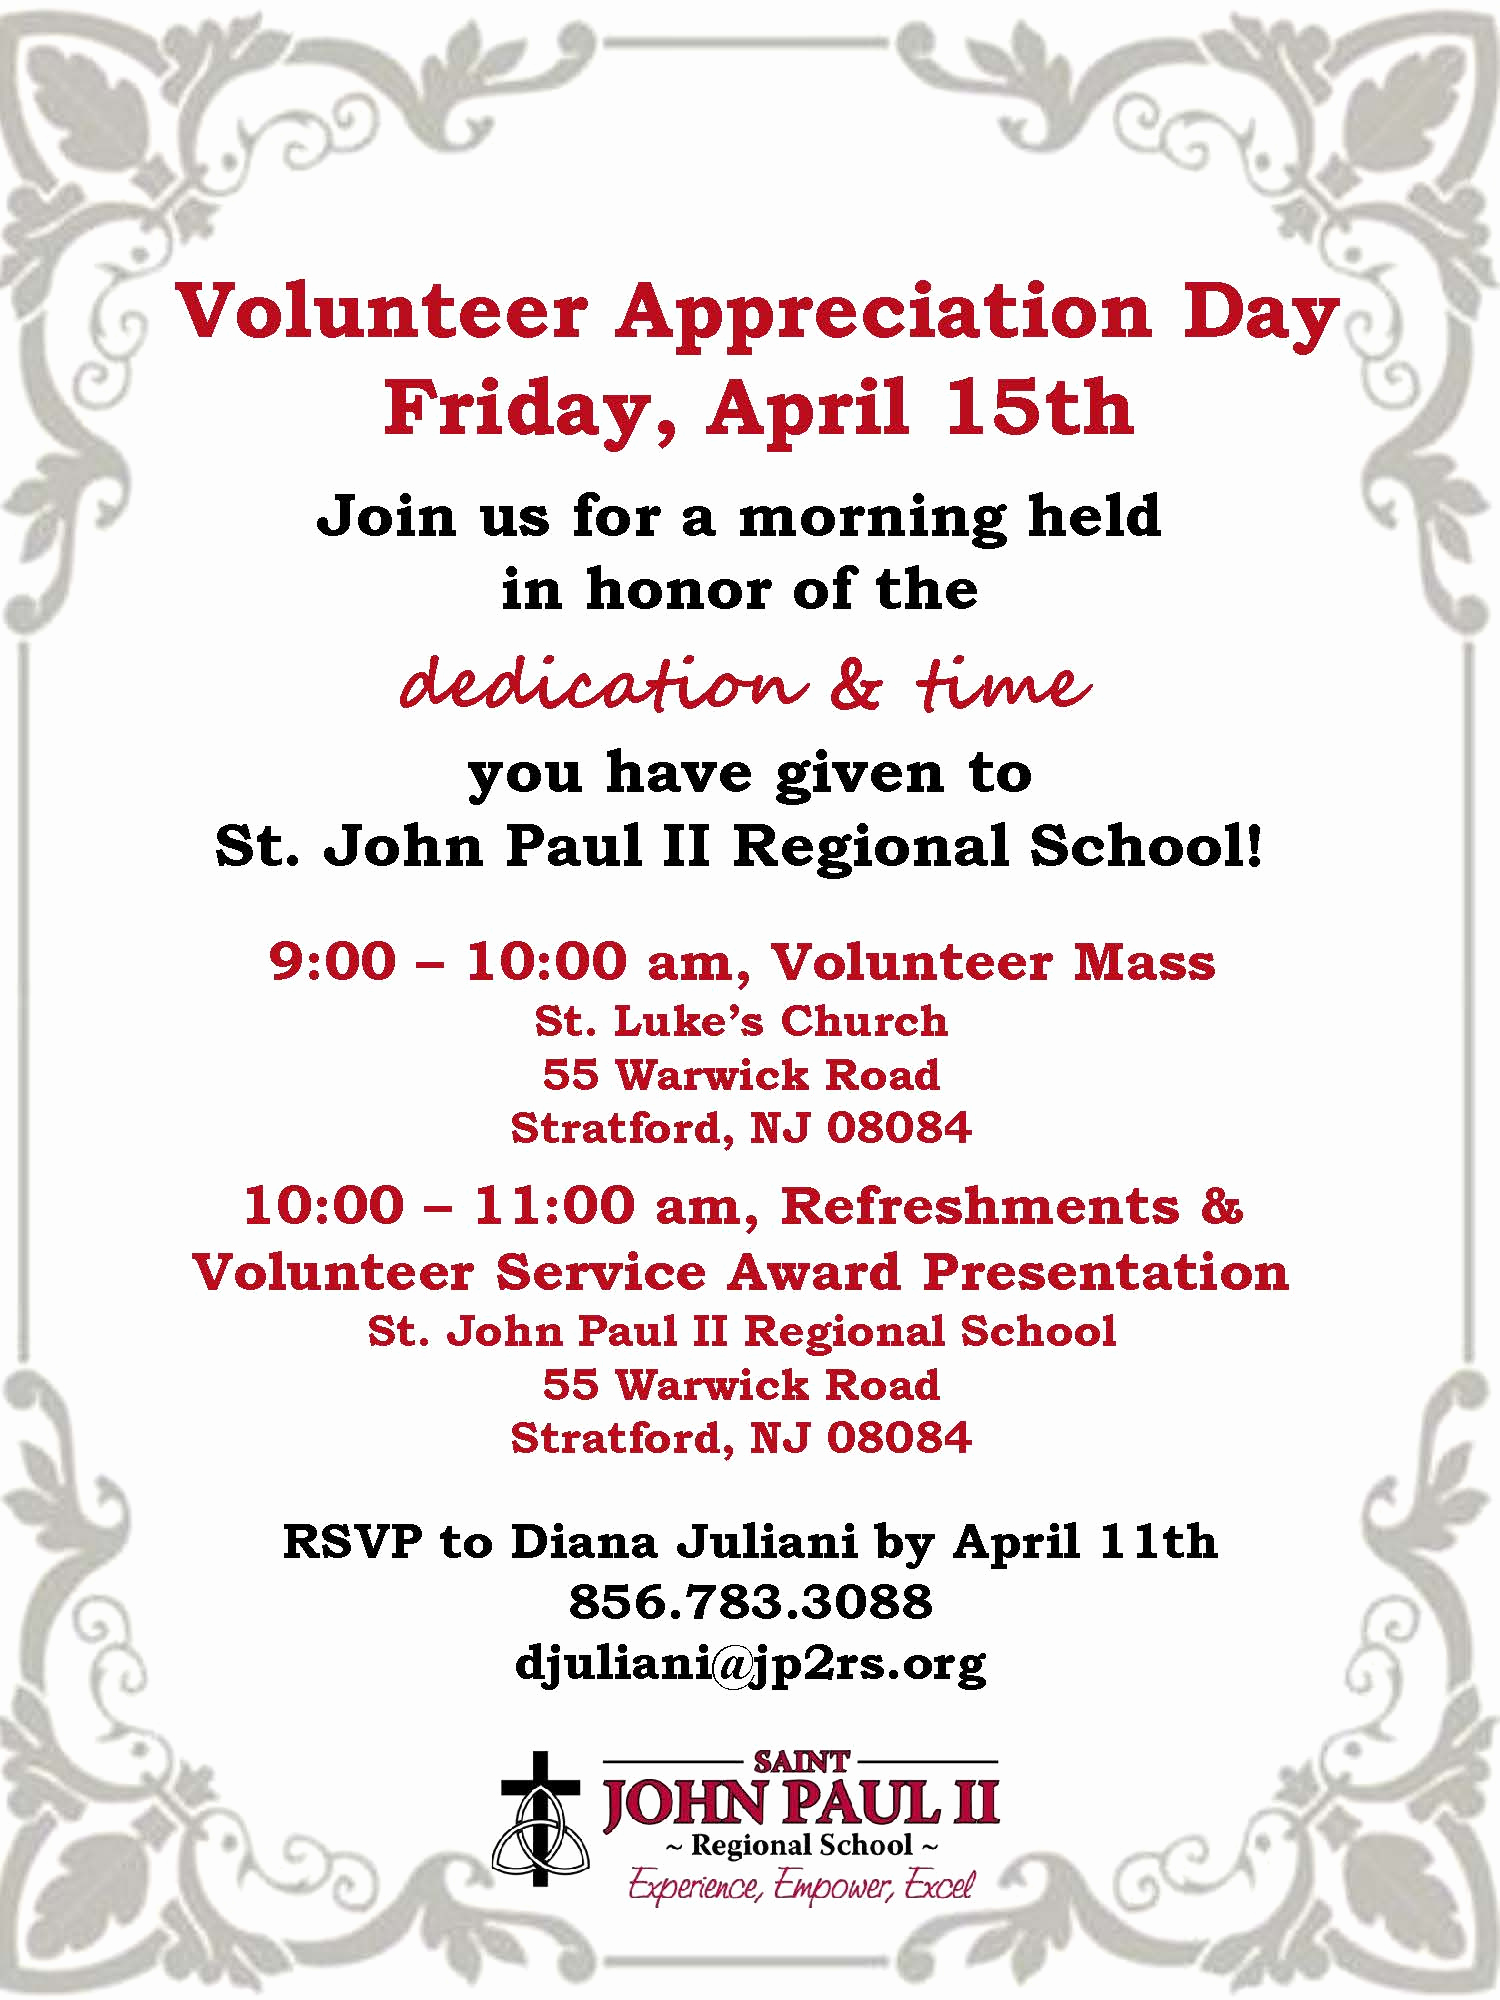 Volunteer Appreciation Invitation Wording Lovely Volunteer Invite 2016 – St John Paul Ii Regional School